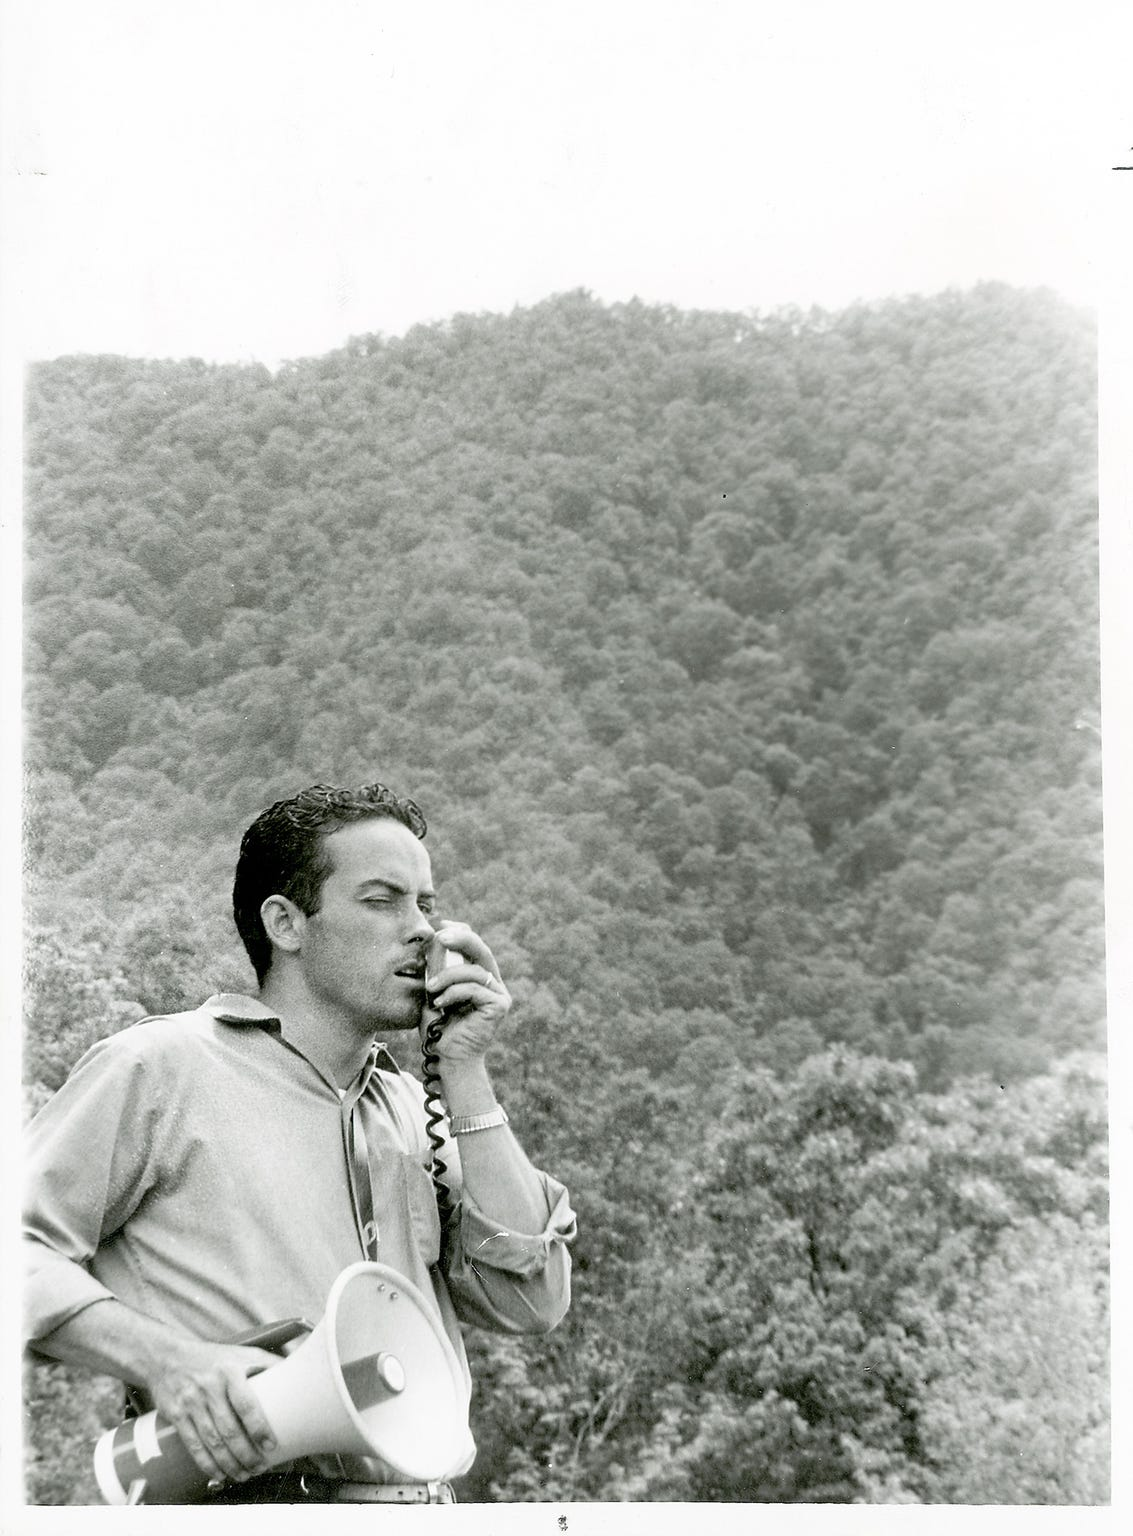 Bill Martin talks through a bull horn in the Dry Valley area of Blount County in the search for his son, Dennis Martin, 6, on June 24, 1969 just outside the Great Smoky Mountains National Park. The boy became separated from family members on Spence Field on June 14. (KNOXVILLE NEWS SENTINEL ARCHIVE)